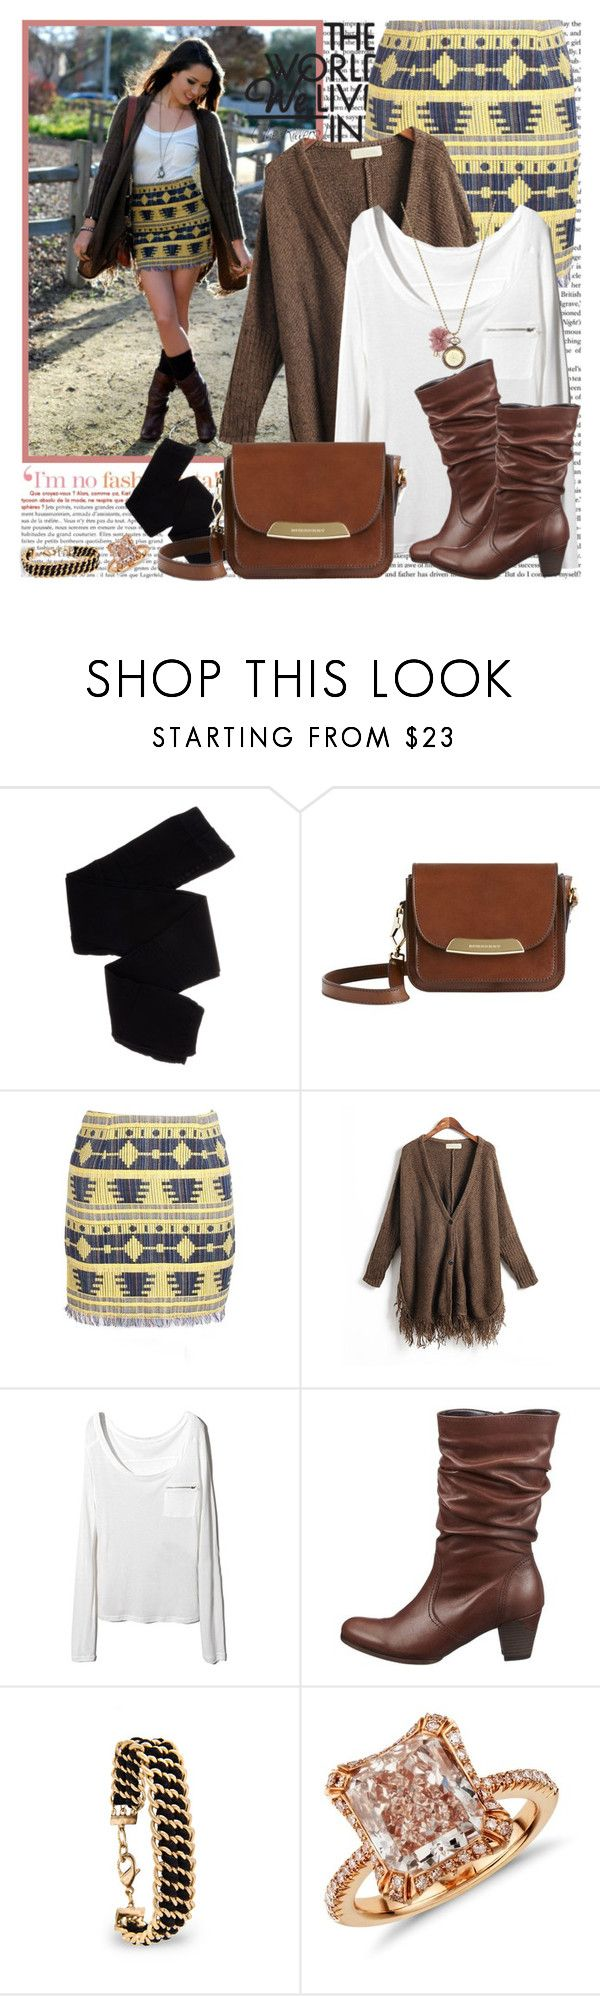 """...You stole my heart but you cant take my mind..."" by klaudia ❤ liked on Polyvore featuring Trasparenze, Burberry, Gabor, MANGO, Blue Nile, chain necklaces, crossbody bags, ankle boots, long shirts and pencil skirts"